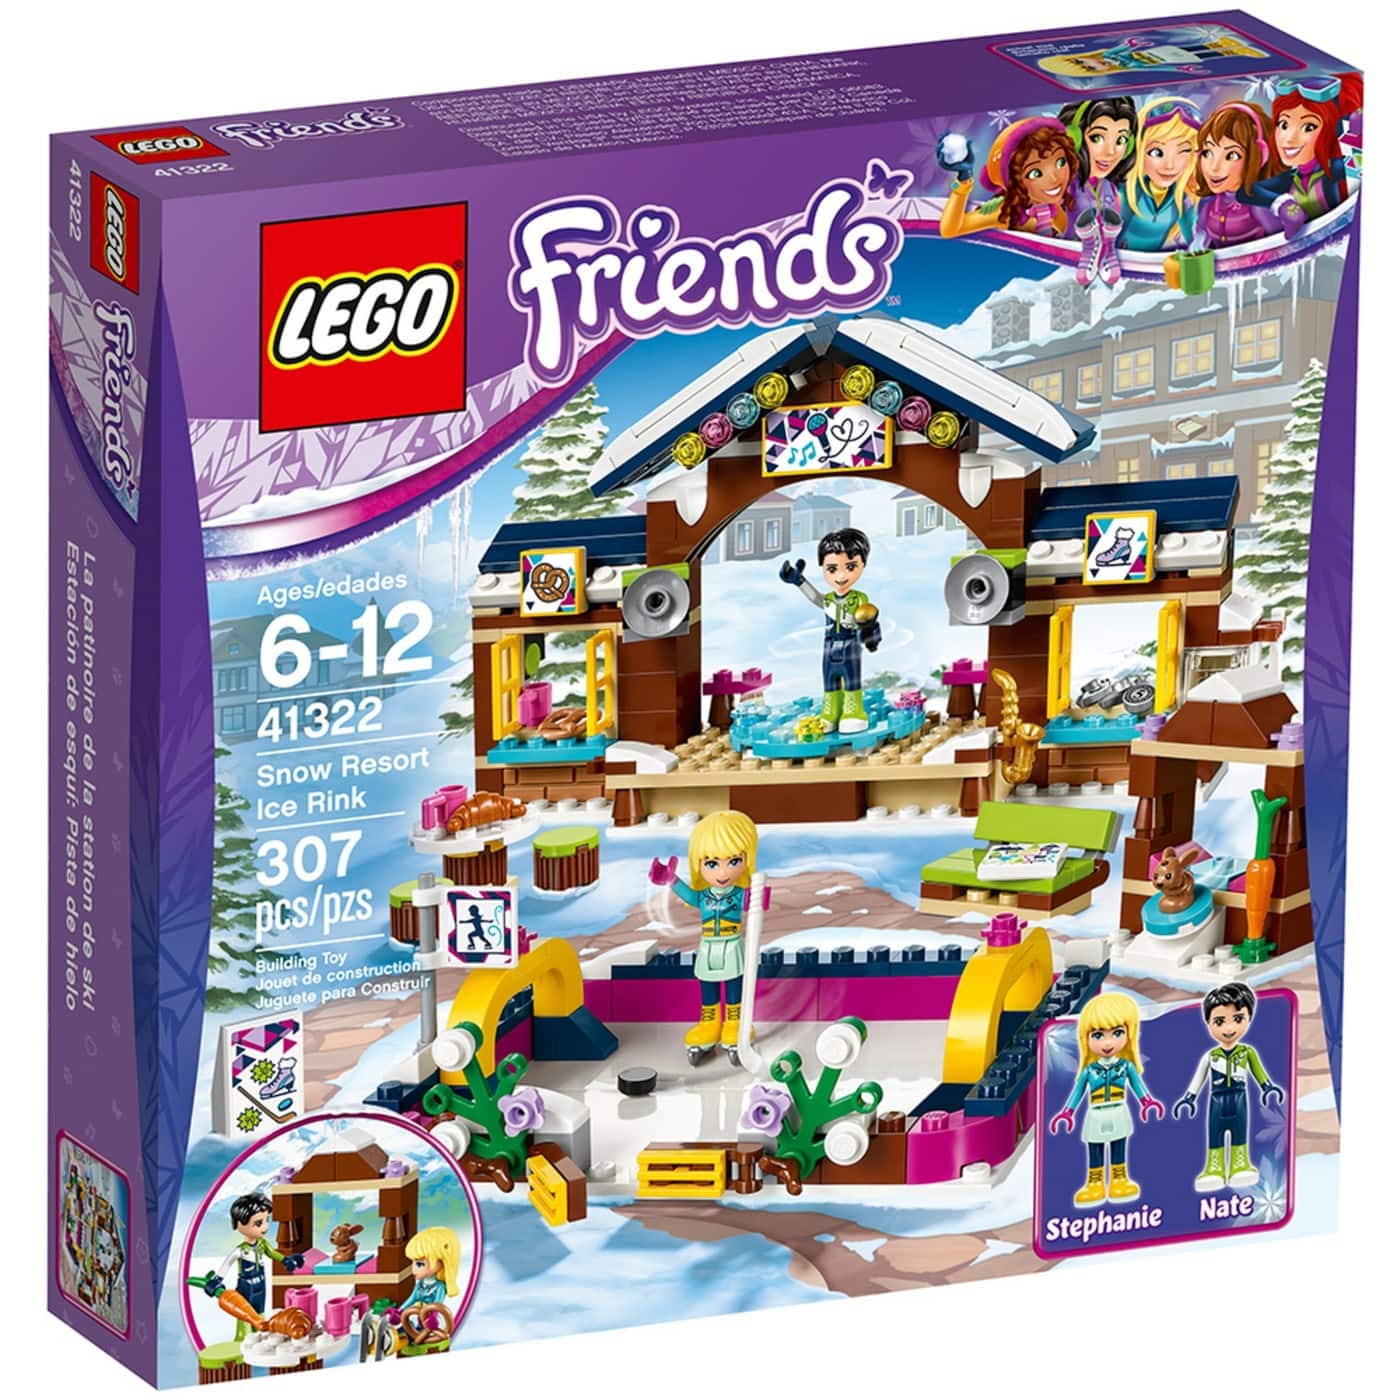 Lego Sets Lego Friends Snow Resort Ice Rink Or Heartlake Pizzeria